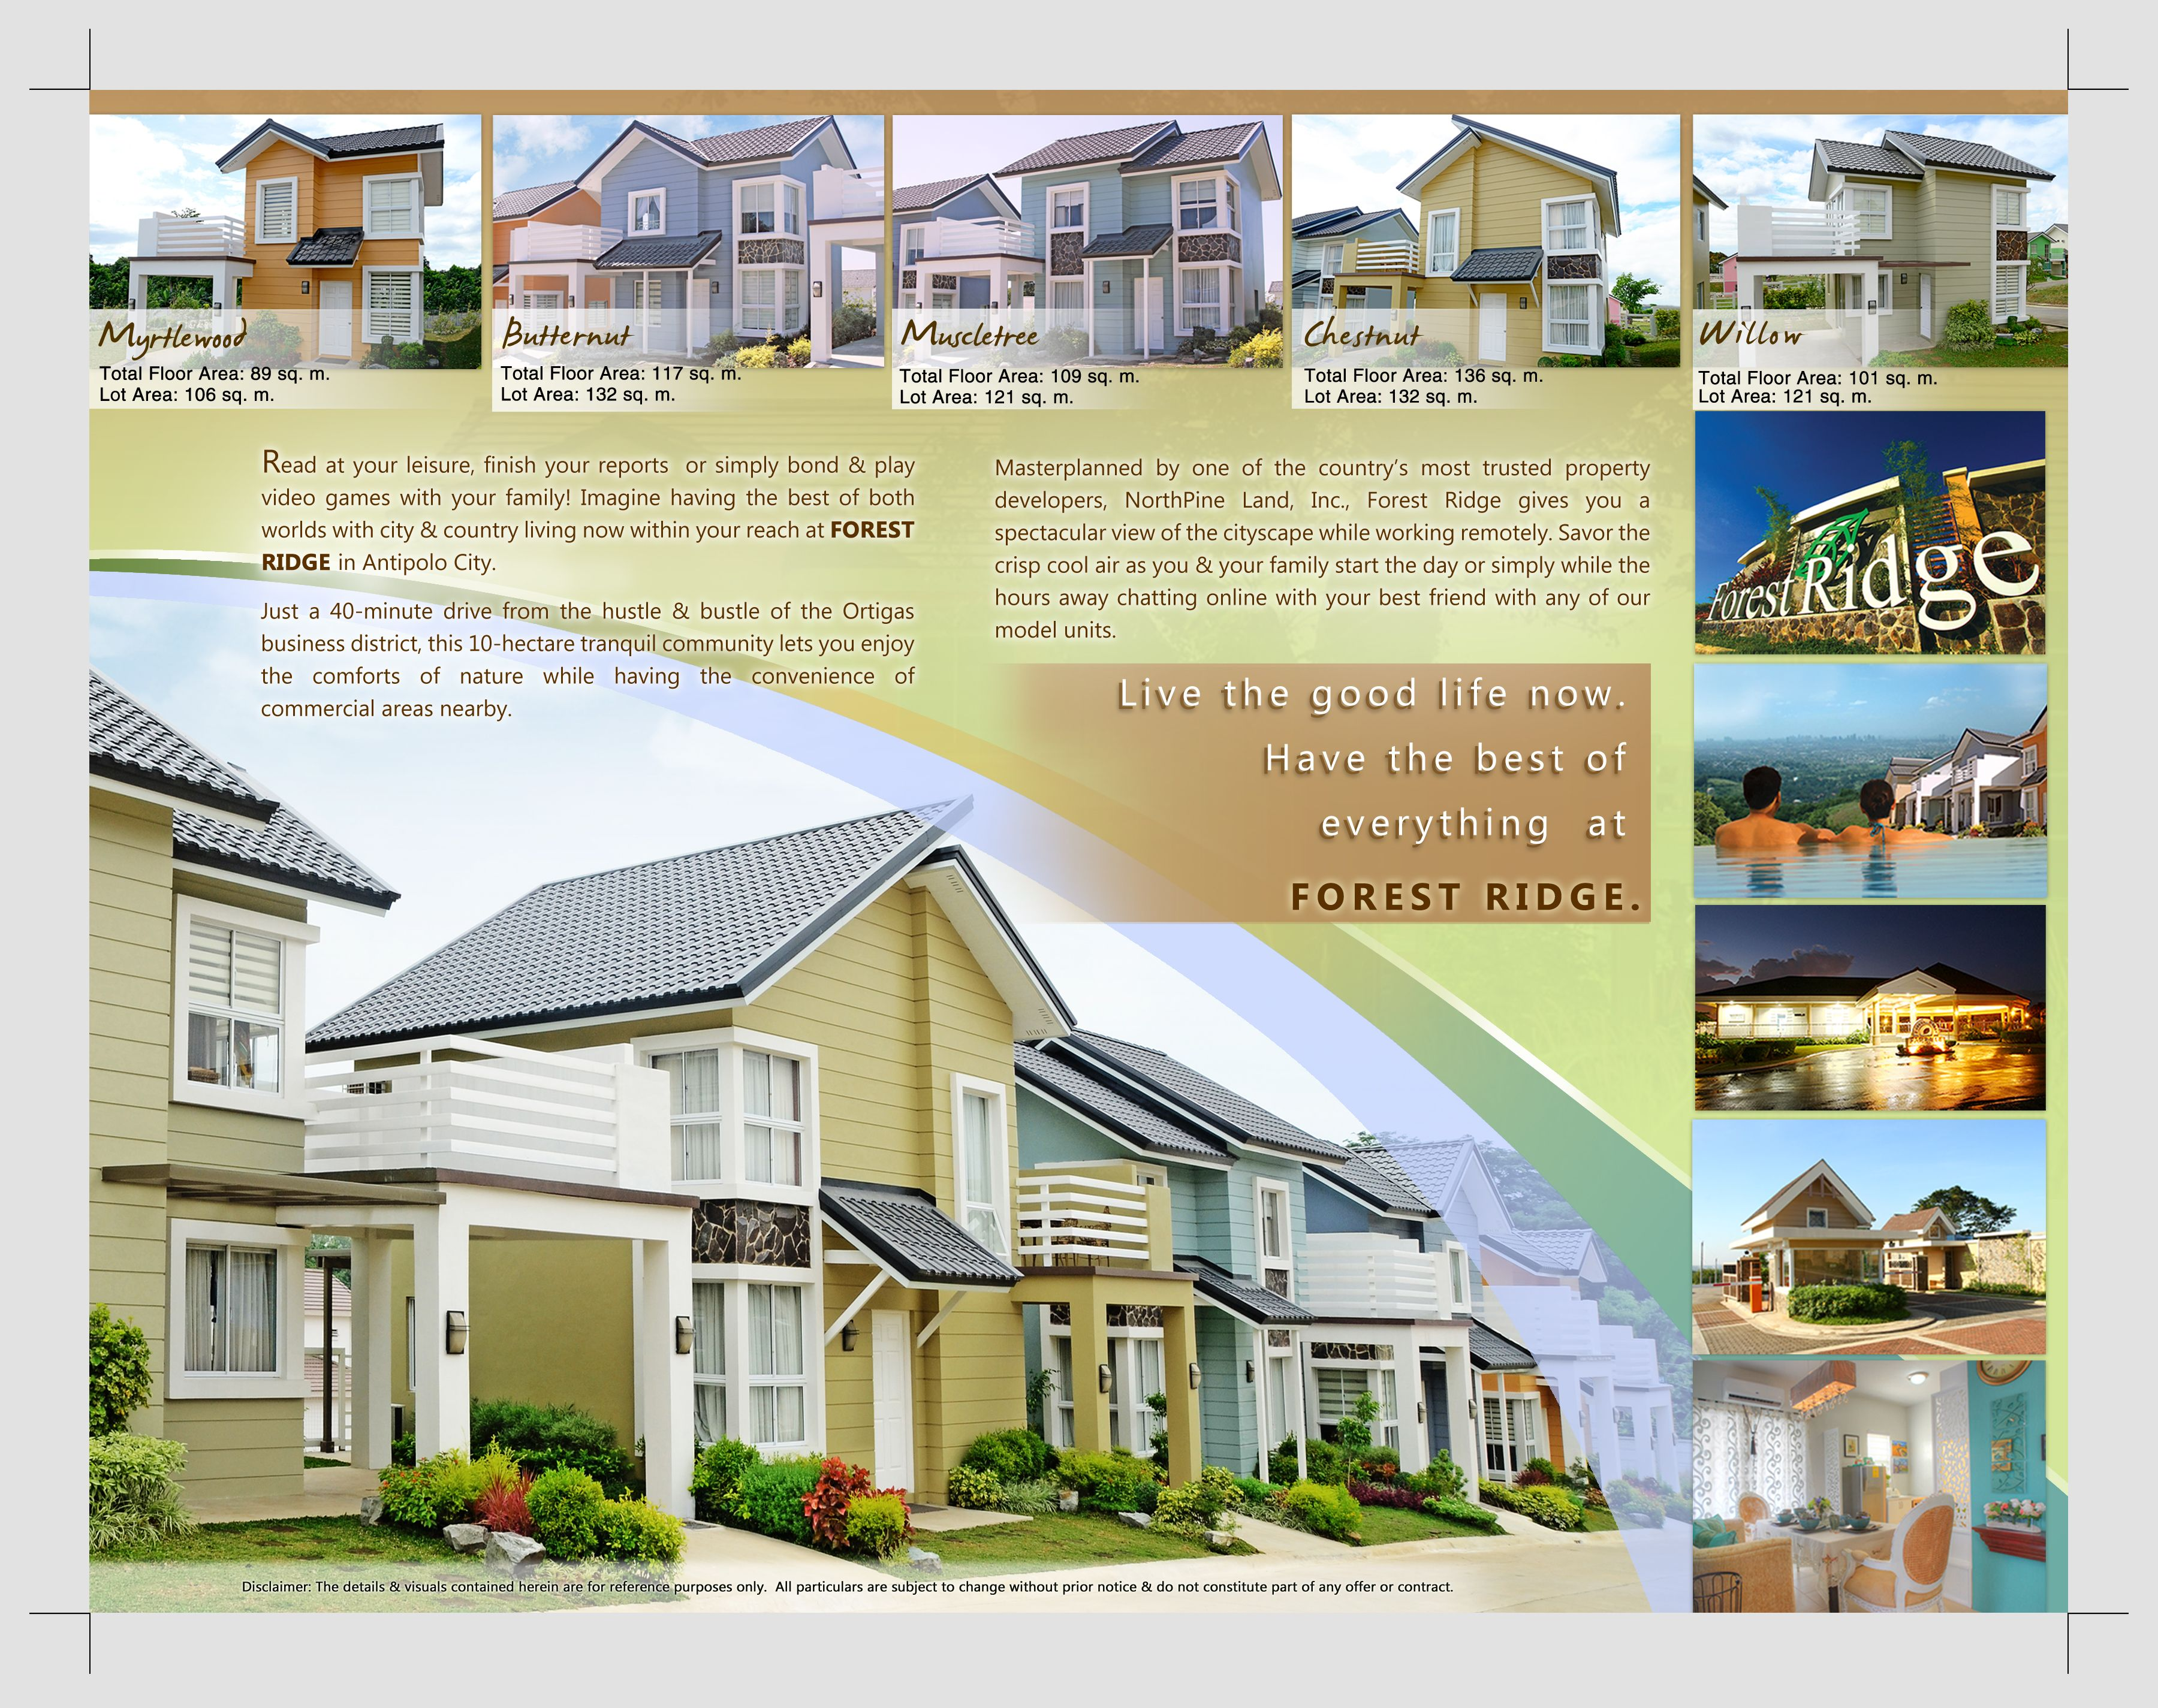 Awesome Tropicalized American Country Homes At FOREST RIDGE In Antipolo City,  Philippines